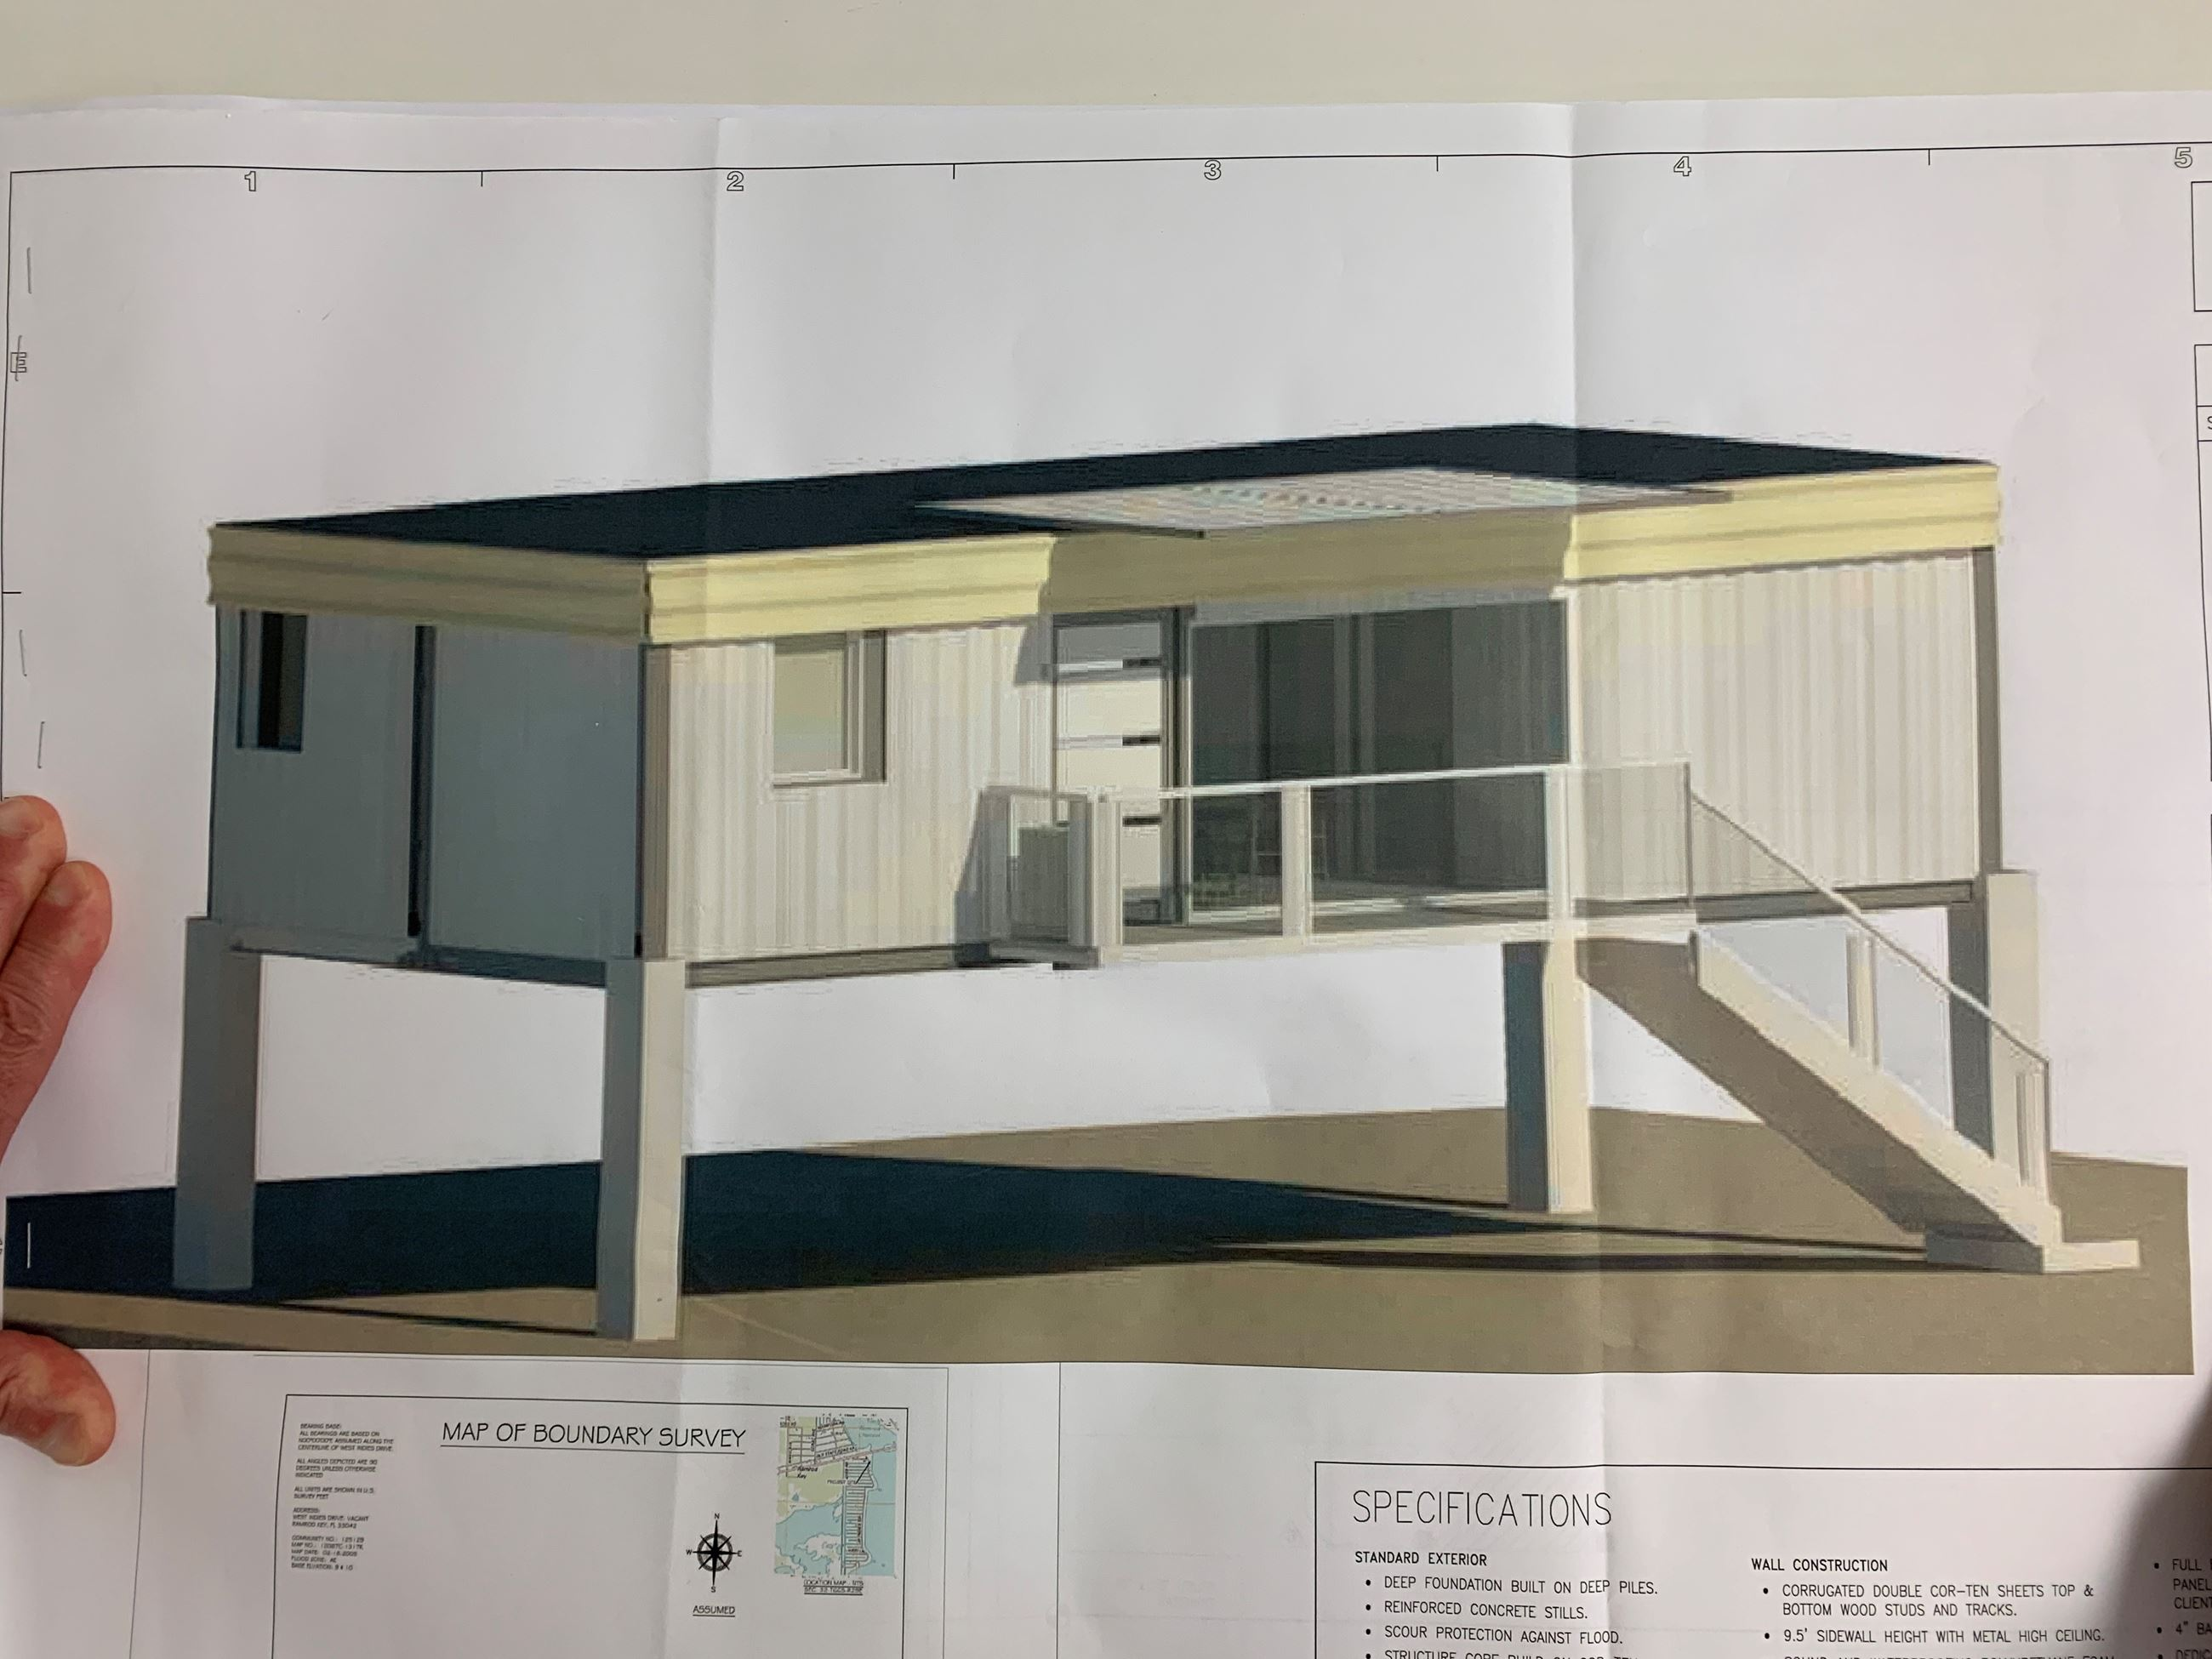 Rendering of a container home on stilts